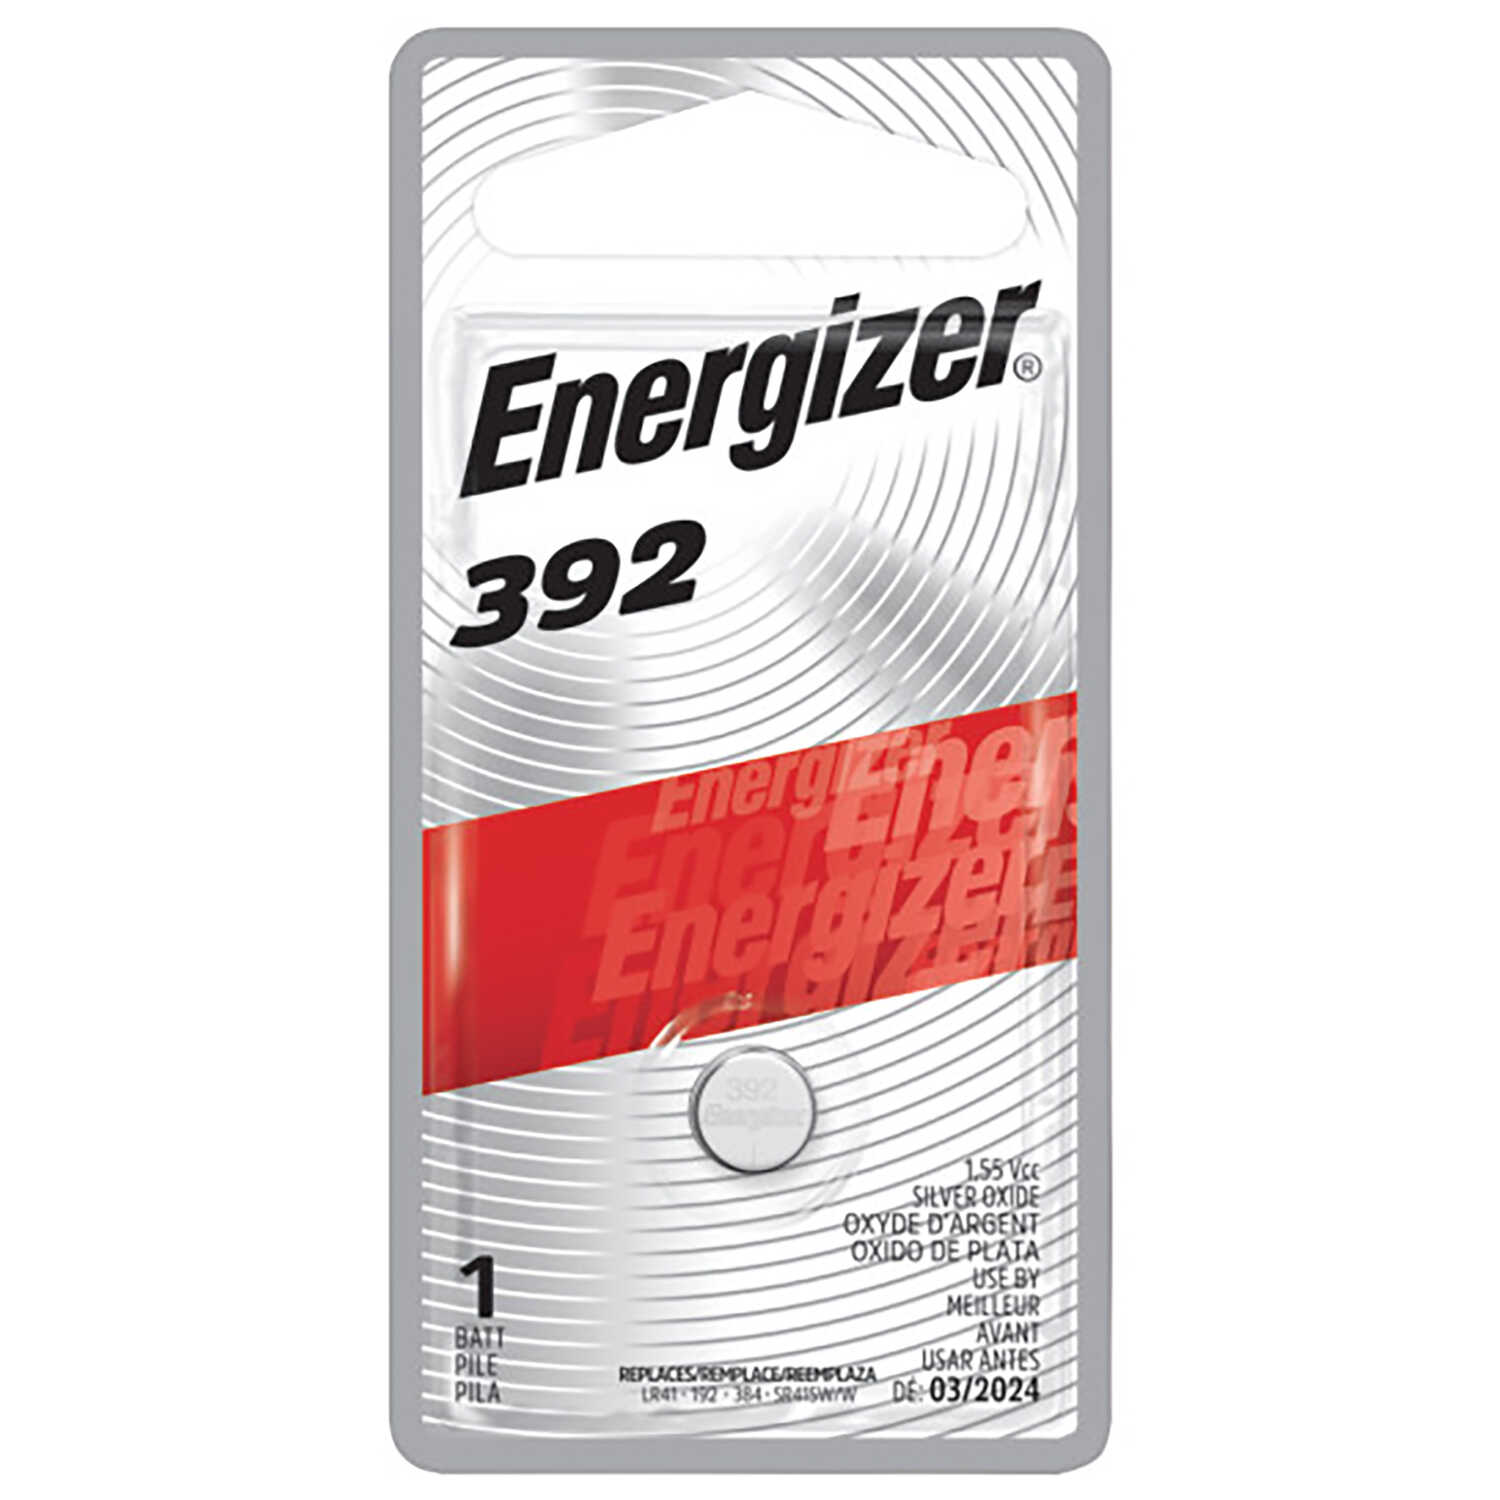 Energizer  Silver Oxide  384/392  1.5 volt Electronic/Watch Battery  1 pk